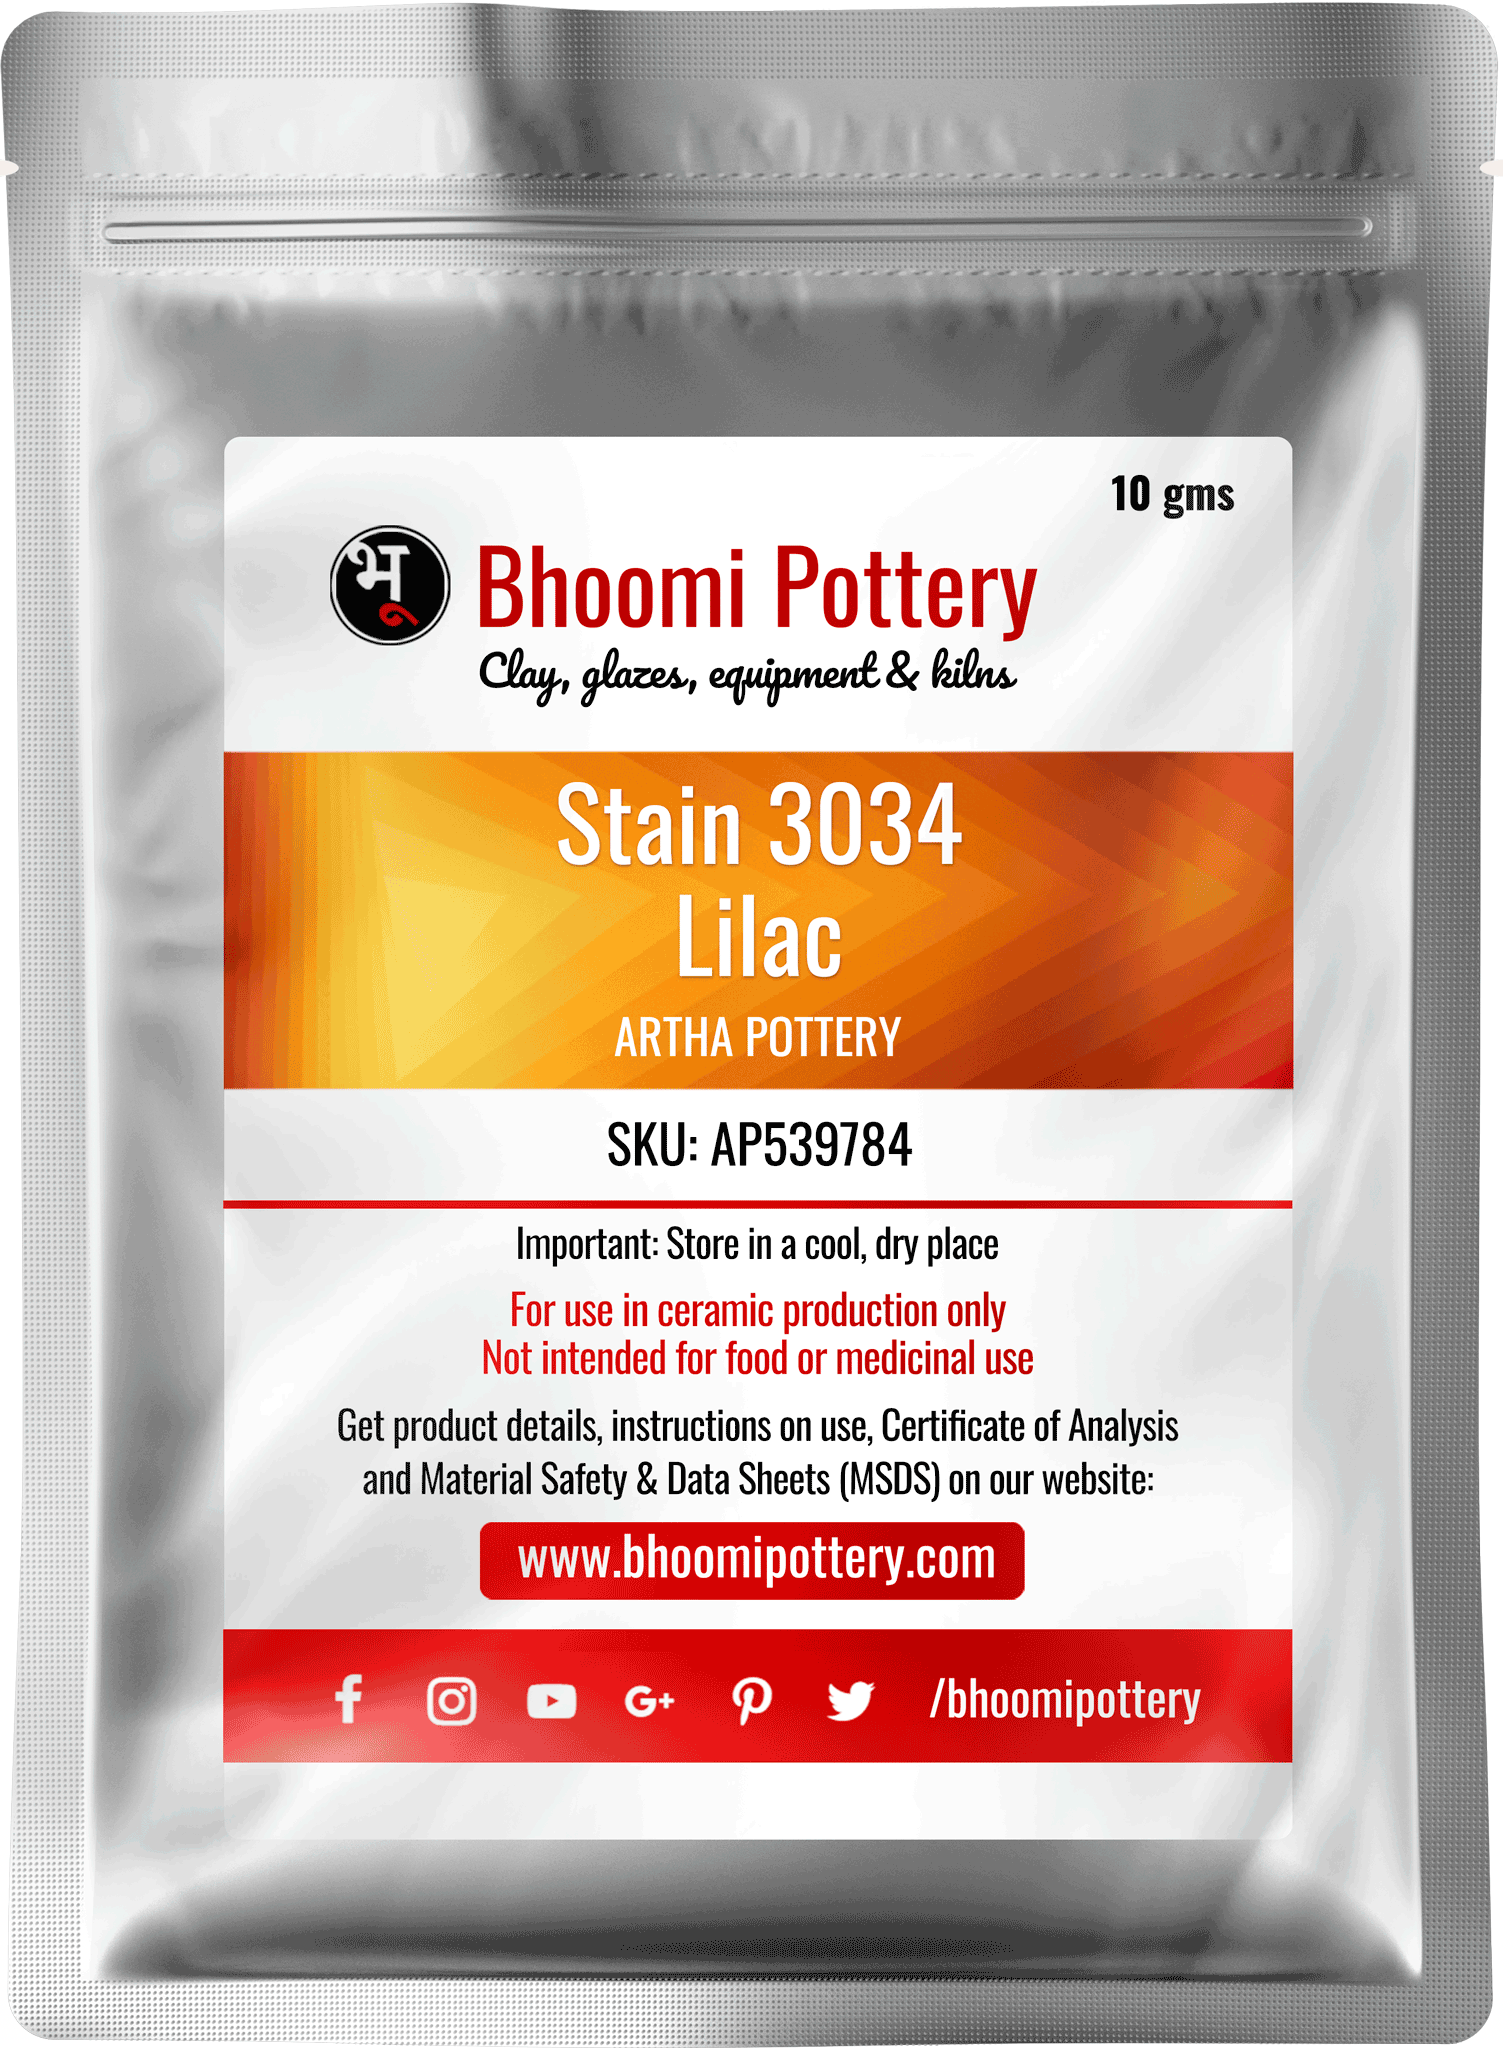 Artha Pottery Stain 3034 Lilac 100 gms for sale in India - Bhoomi Pottery